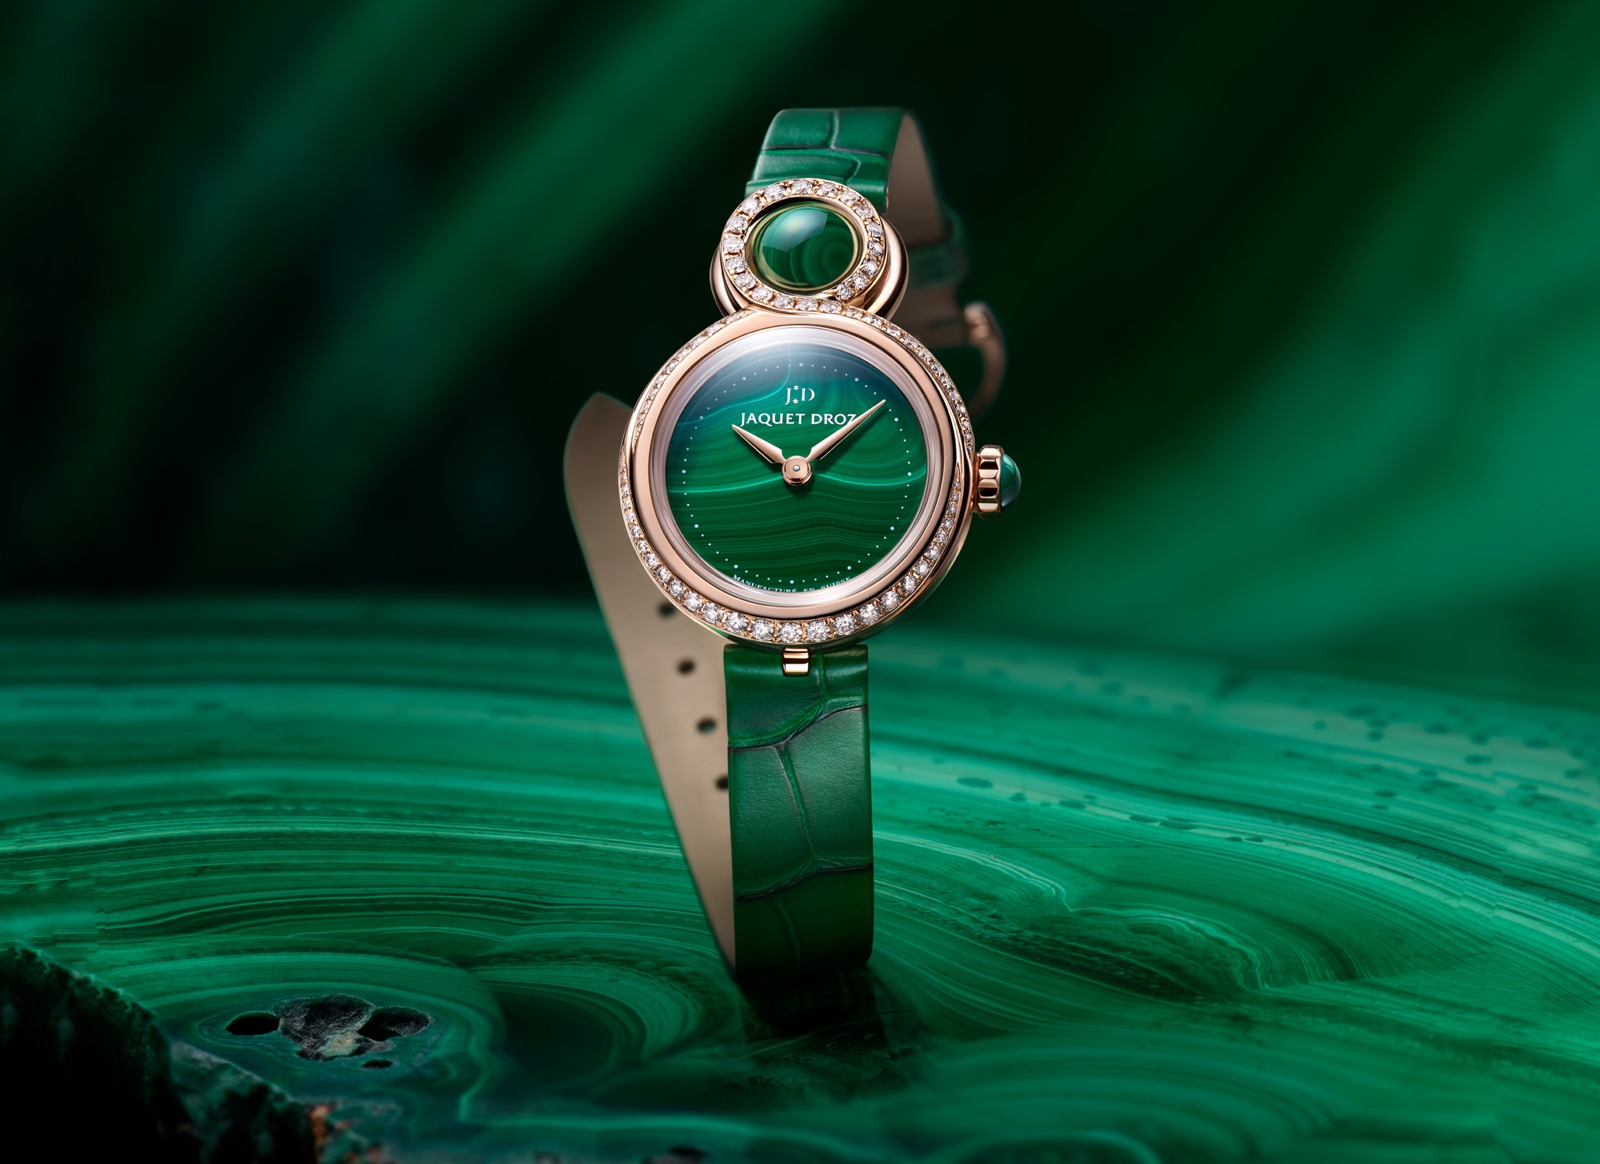 Jaquet Droz en el Time to Move 2019 - Lady 8 Petite Malachite